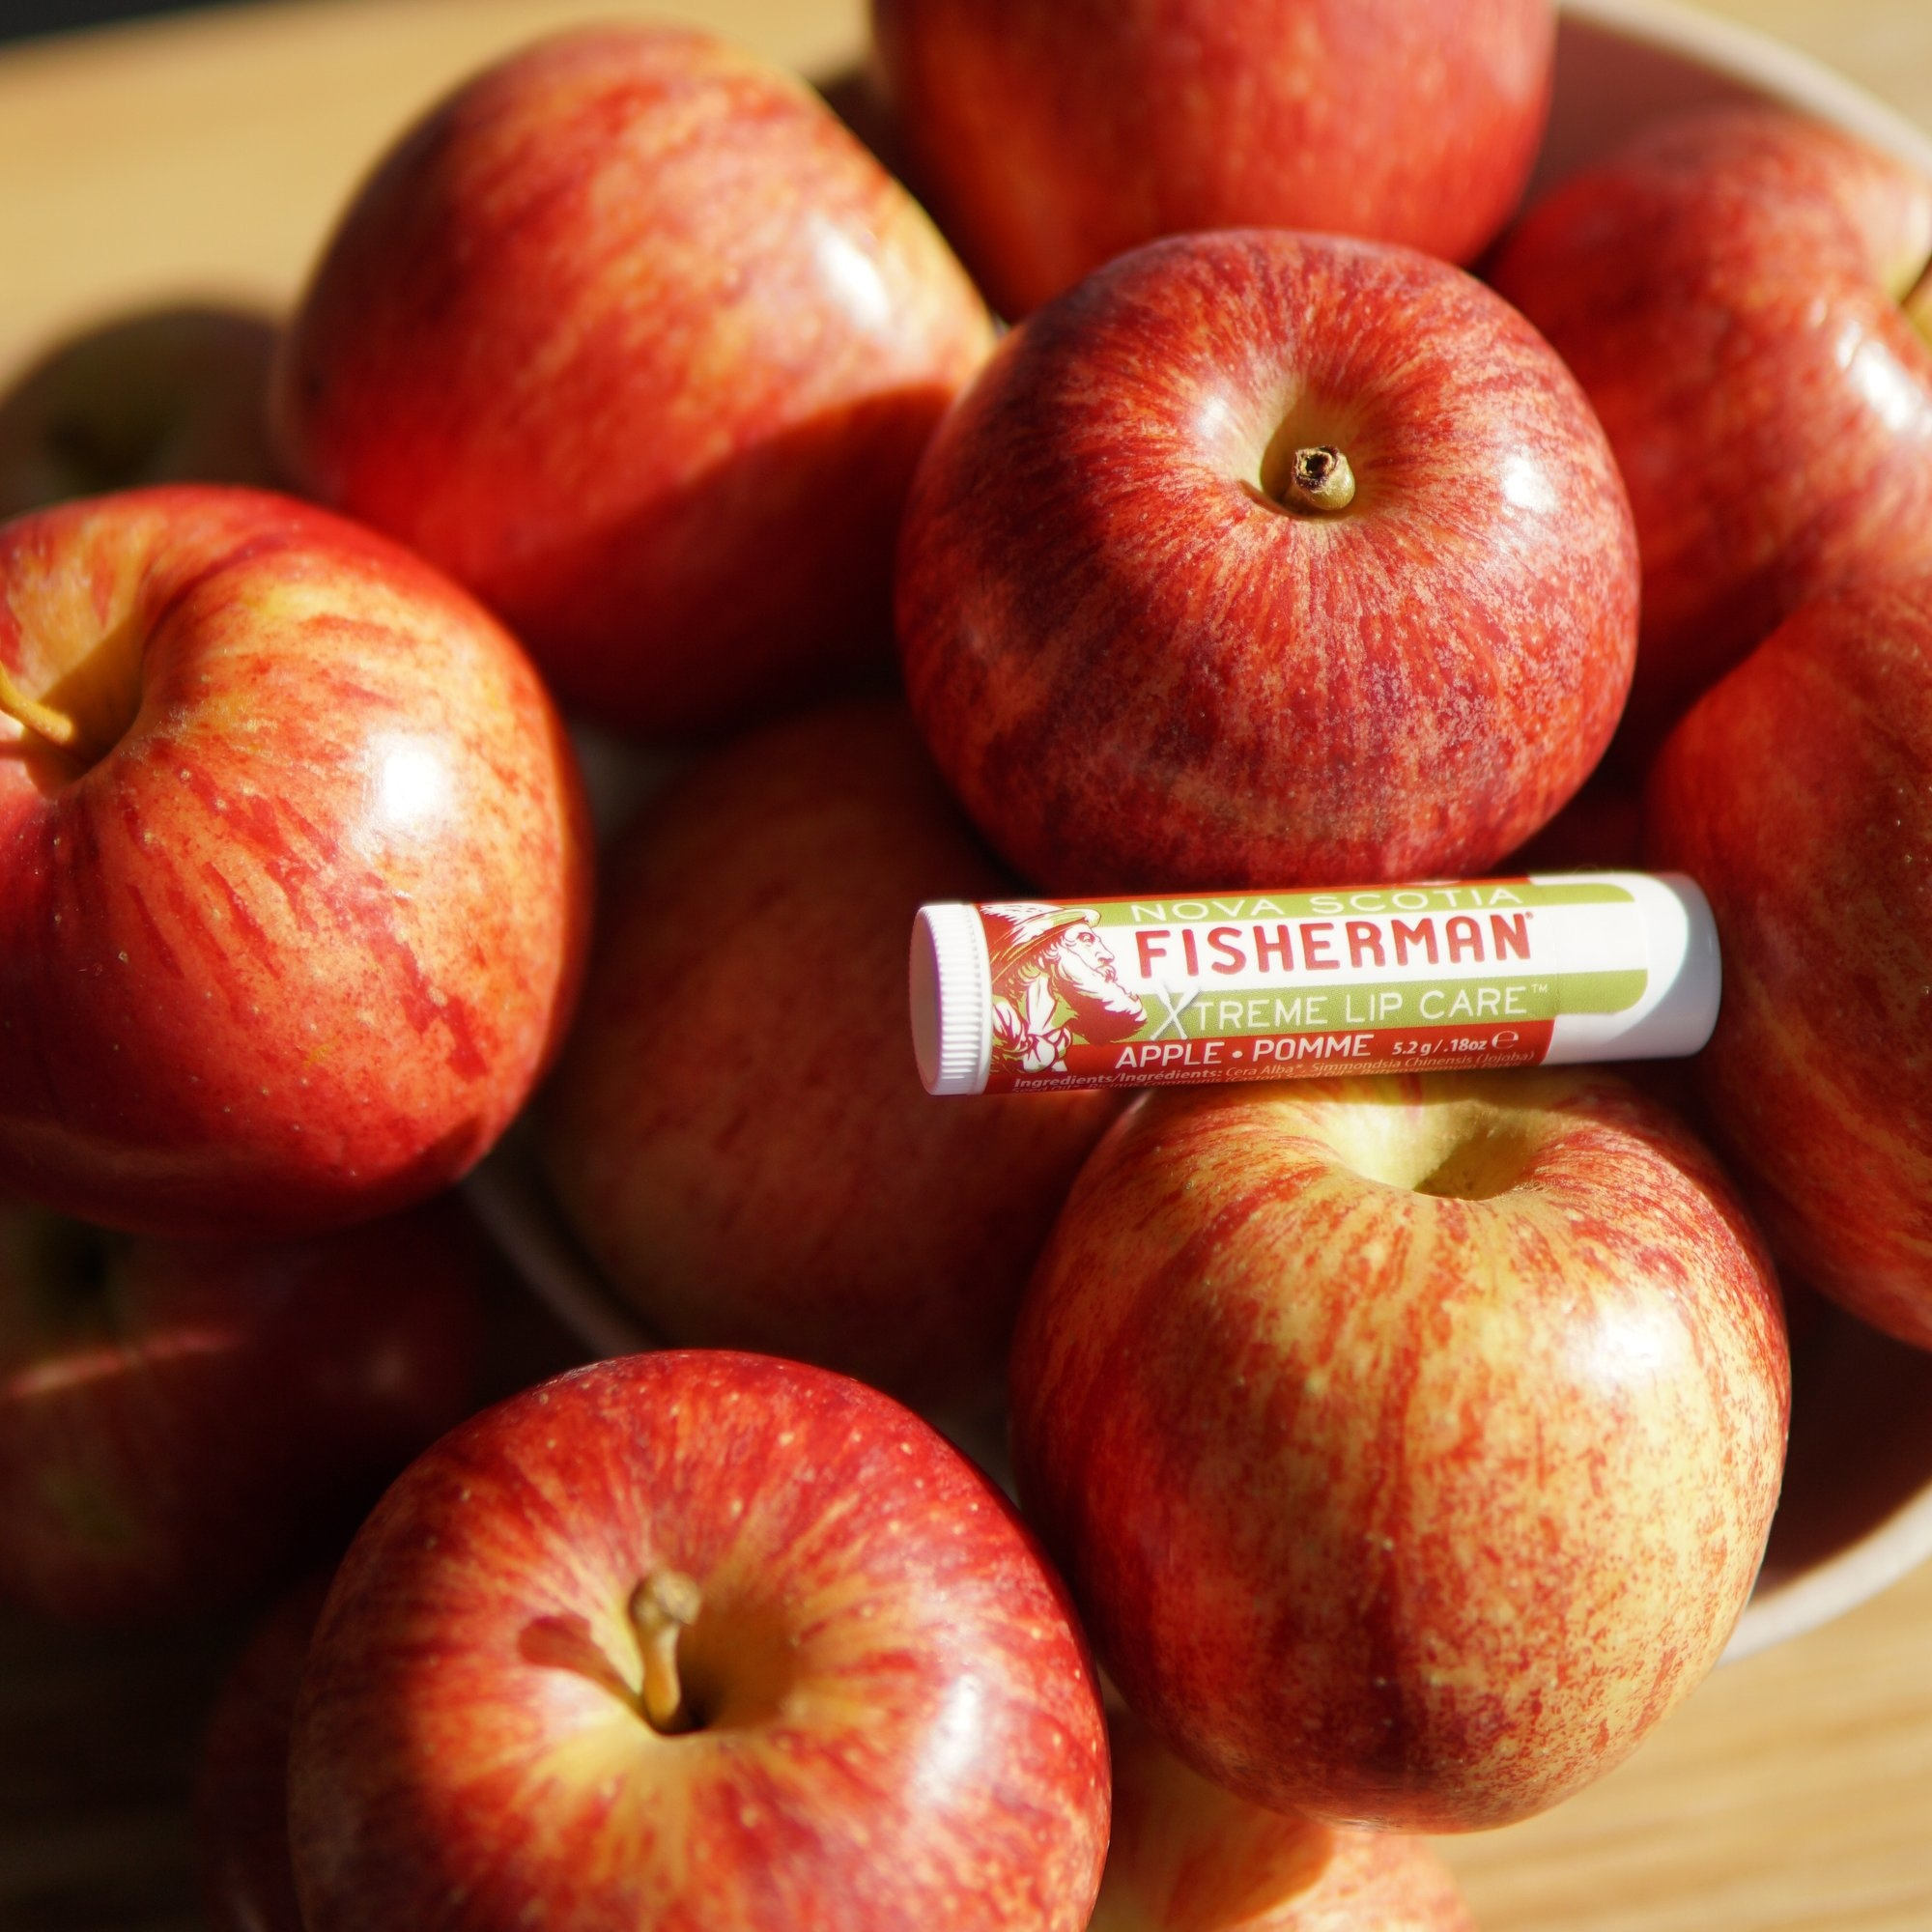 Nova Scotia Fisherman Nova Scotia Fisherman - Apple Lip Care 2-Pack